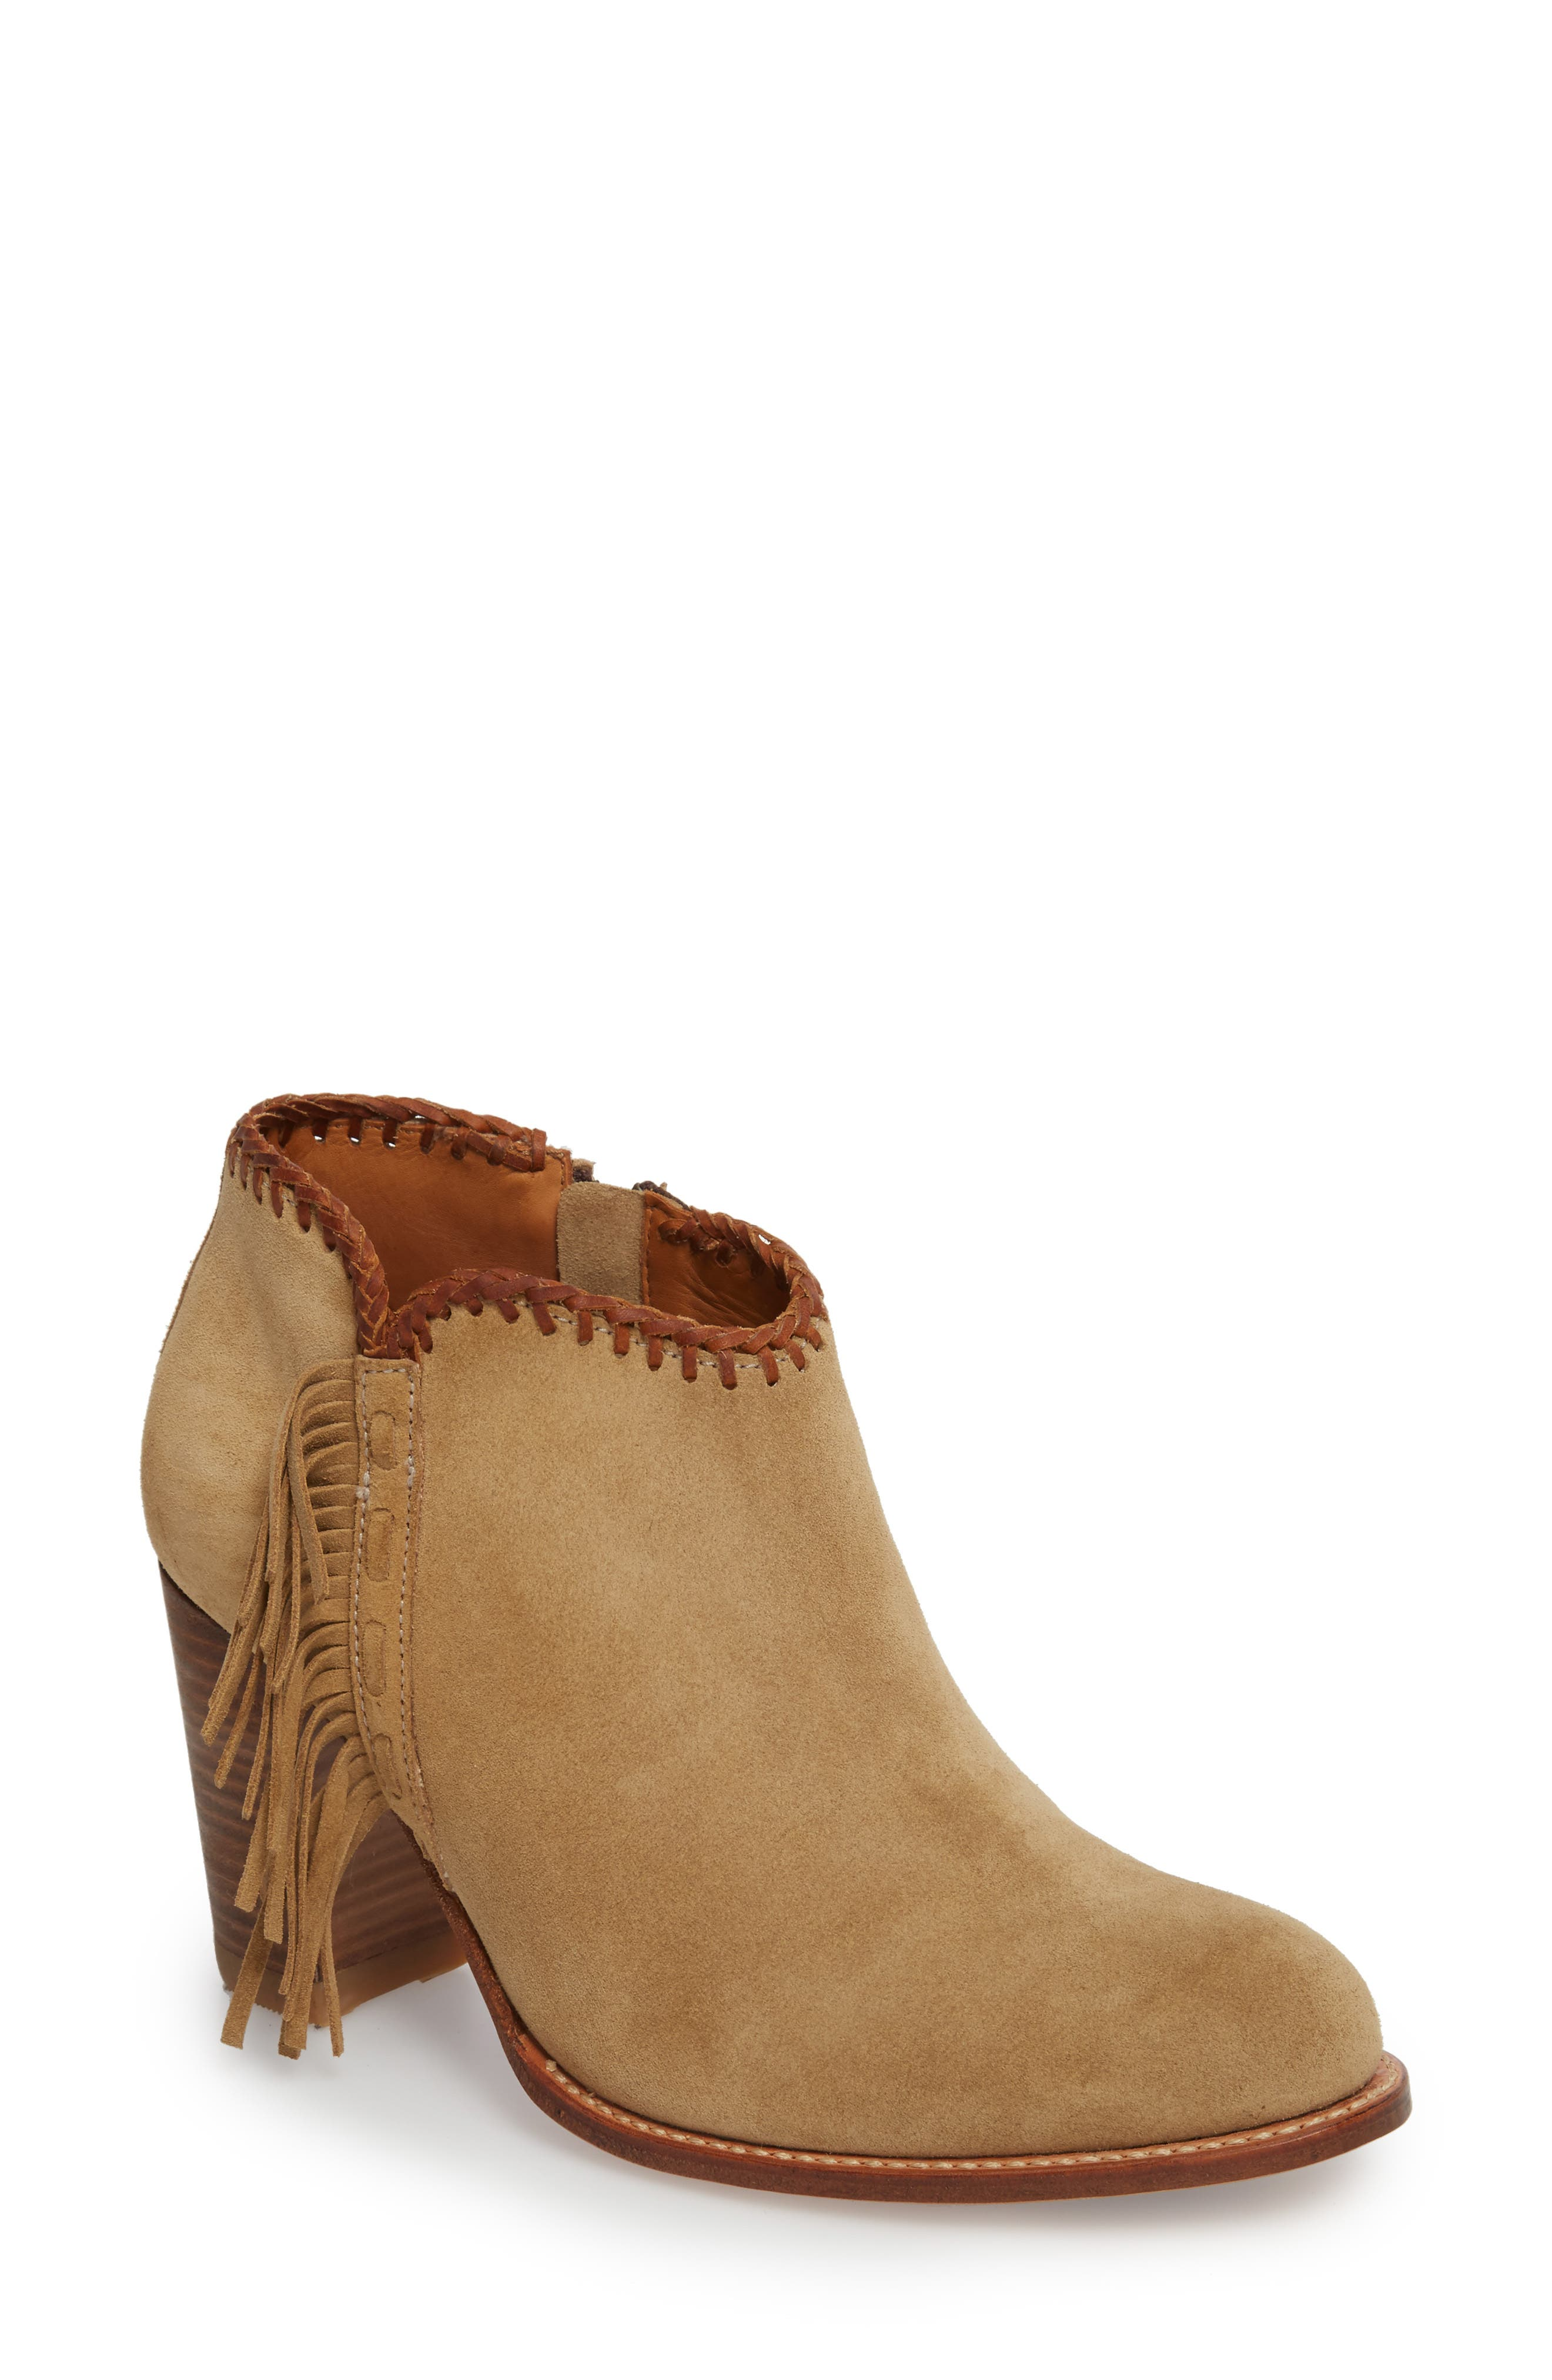 Sonya Fringed Bootie,                         Main,                         color, 250